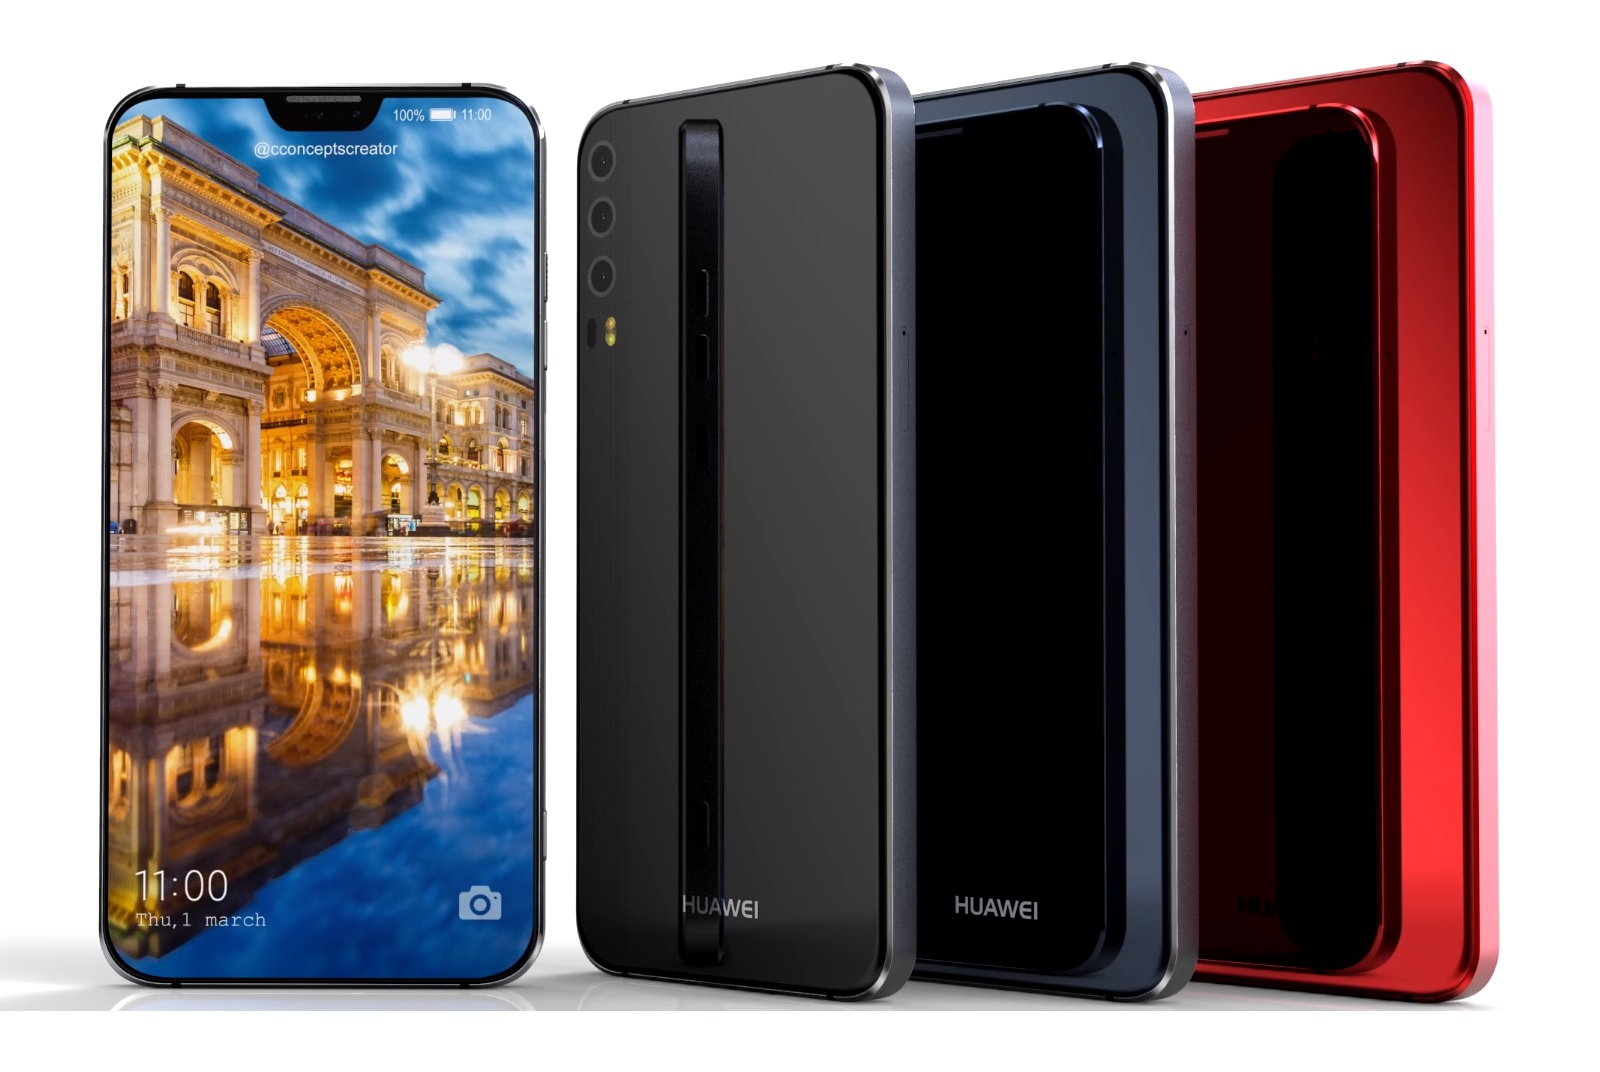 huawei p11 konzept video zeigt randloses notch design mit. Black Bedroom Furniture Sets. Home Design Ideas